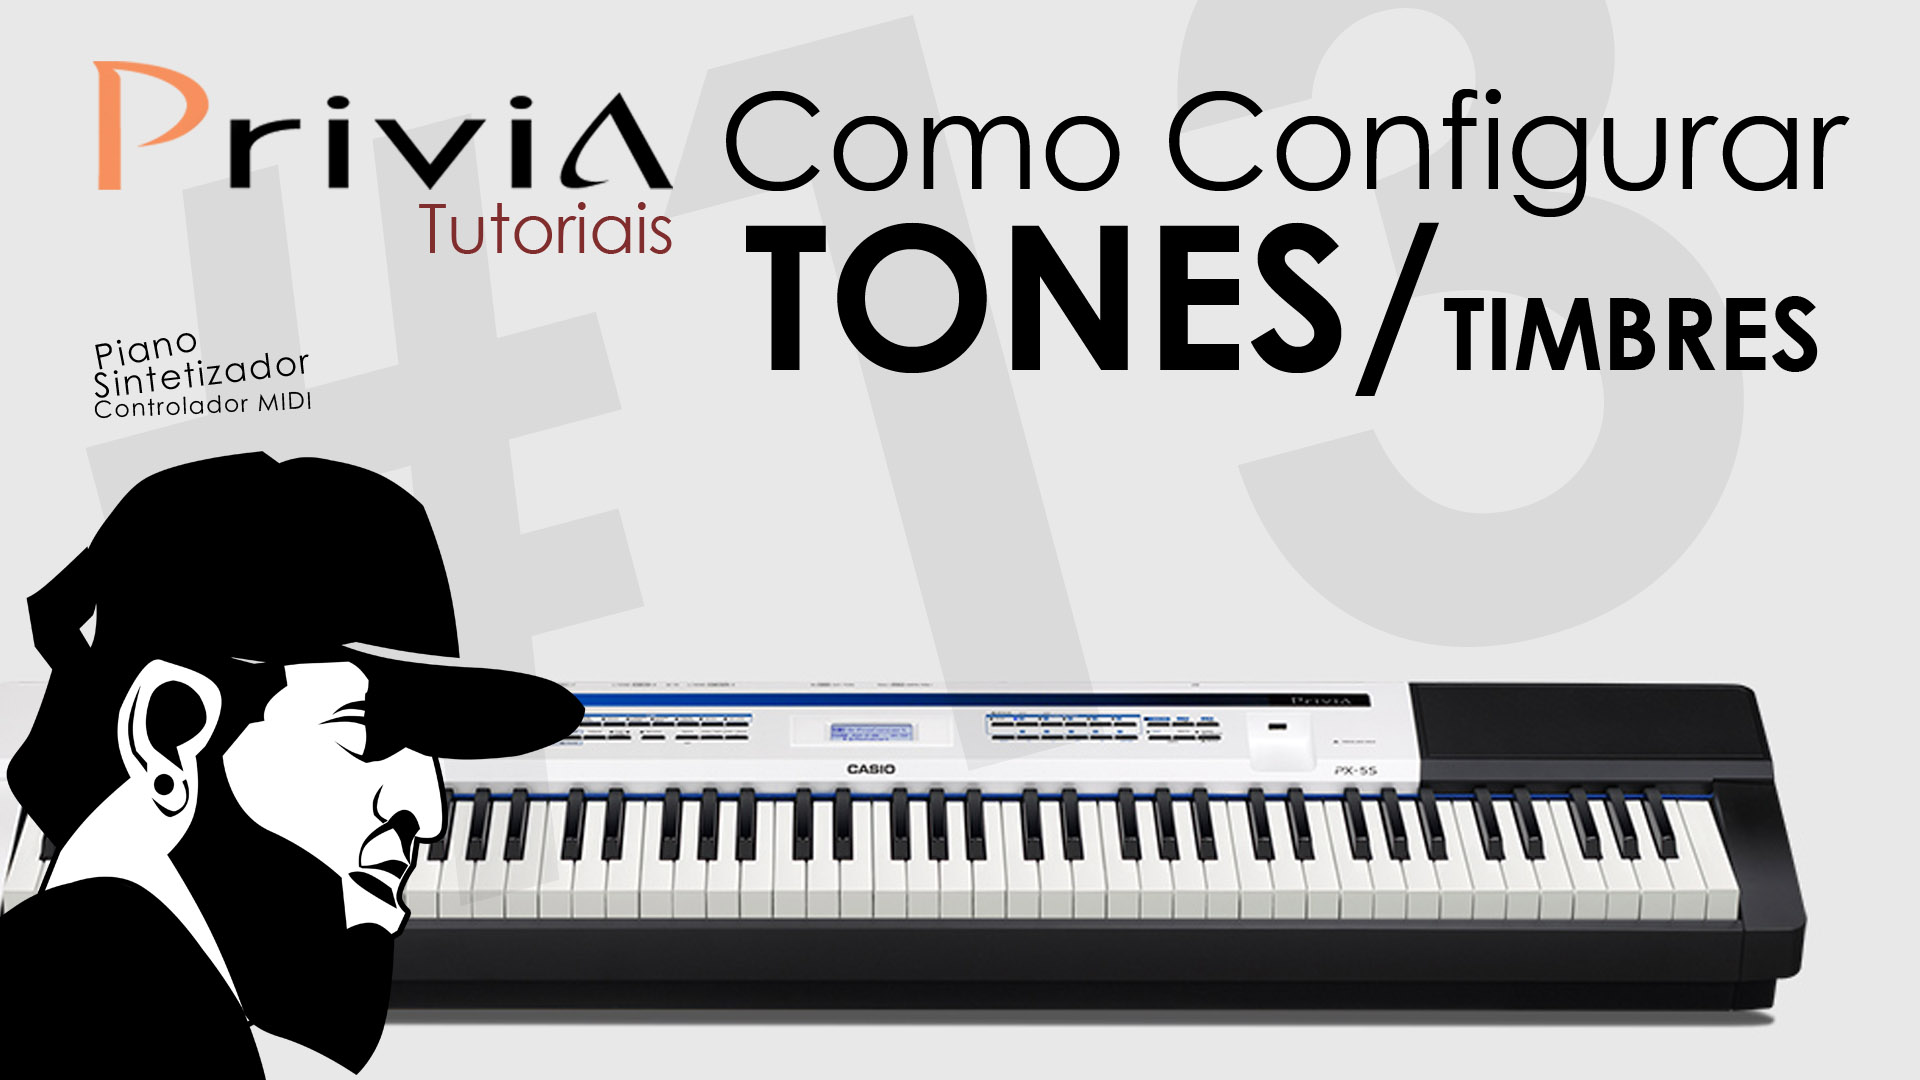 Tutorial Casio Privia PX 5S #13 – Como Configurar Tones/Timbres do Casio Privia PX 5S